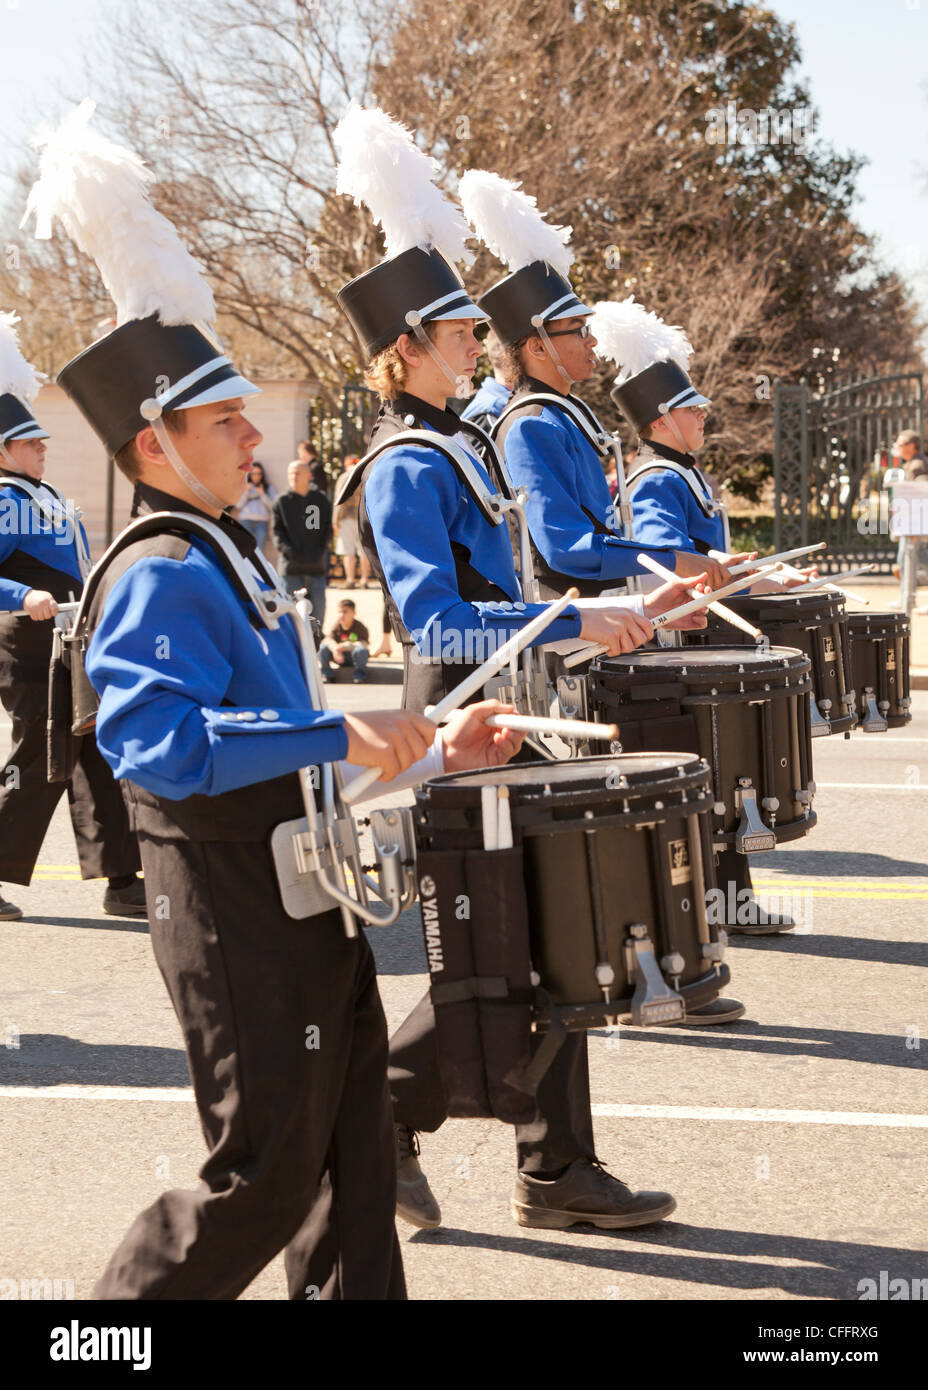 high school marching band snare drums section stock photo 43988632 alamy. Black Bedroom Furniture Sets. Home Design Ideas